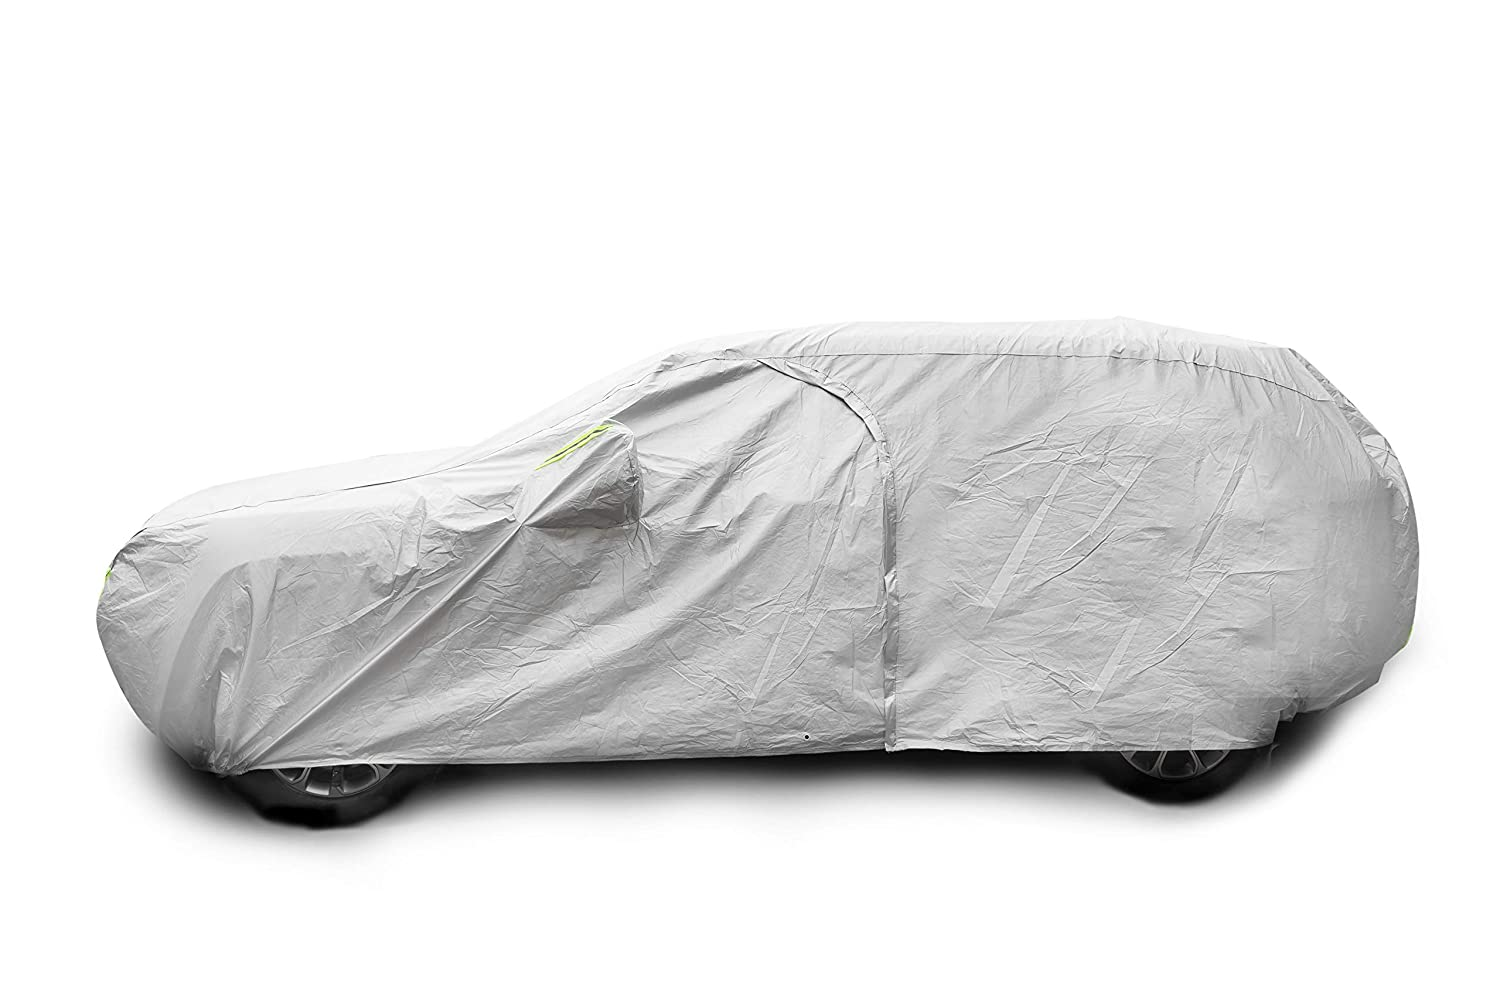 Tecoom Breathable Material Door Shape Zipper Design Waterproof UV-Proof Windproof Car Cover with Storage and Lock for All Weather Indoor Outdoor Fit 196-210 inches SUV